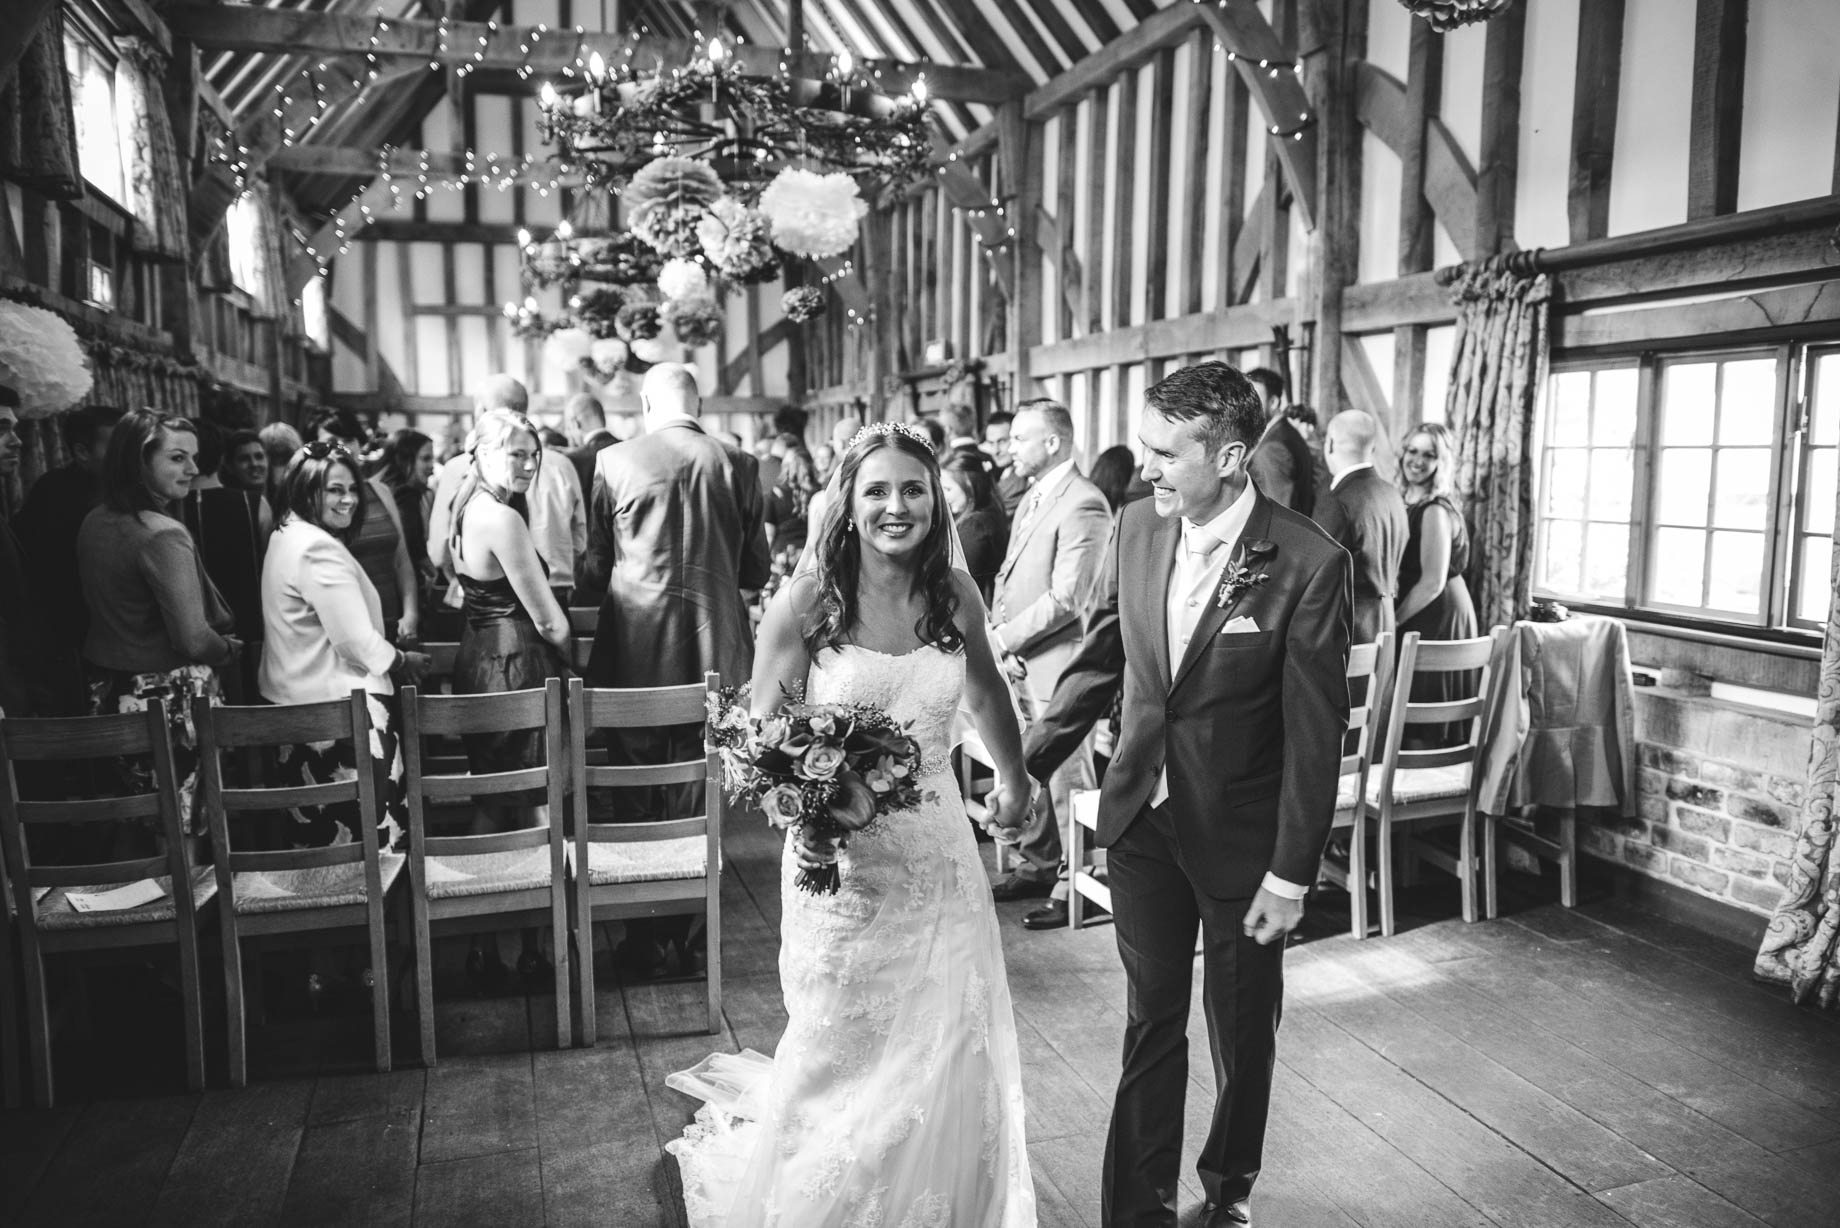 Gate-Street-Barn-wedding-photography-Guy-Collier-Claire-and-Andy-63-of-192